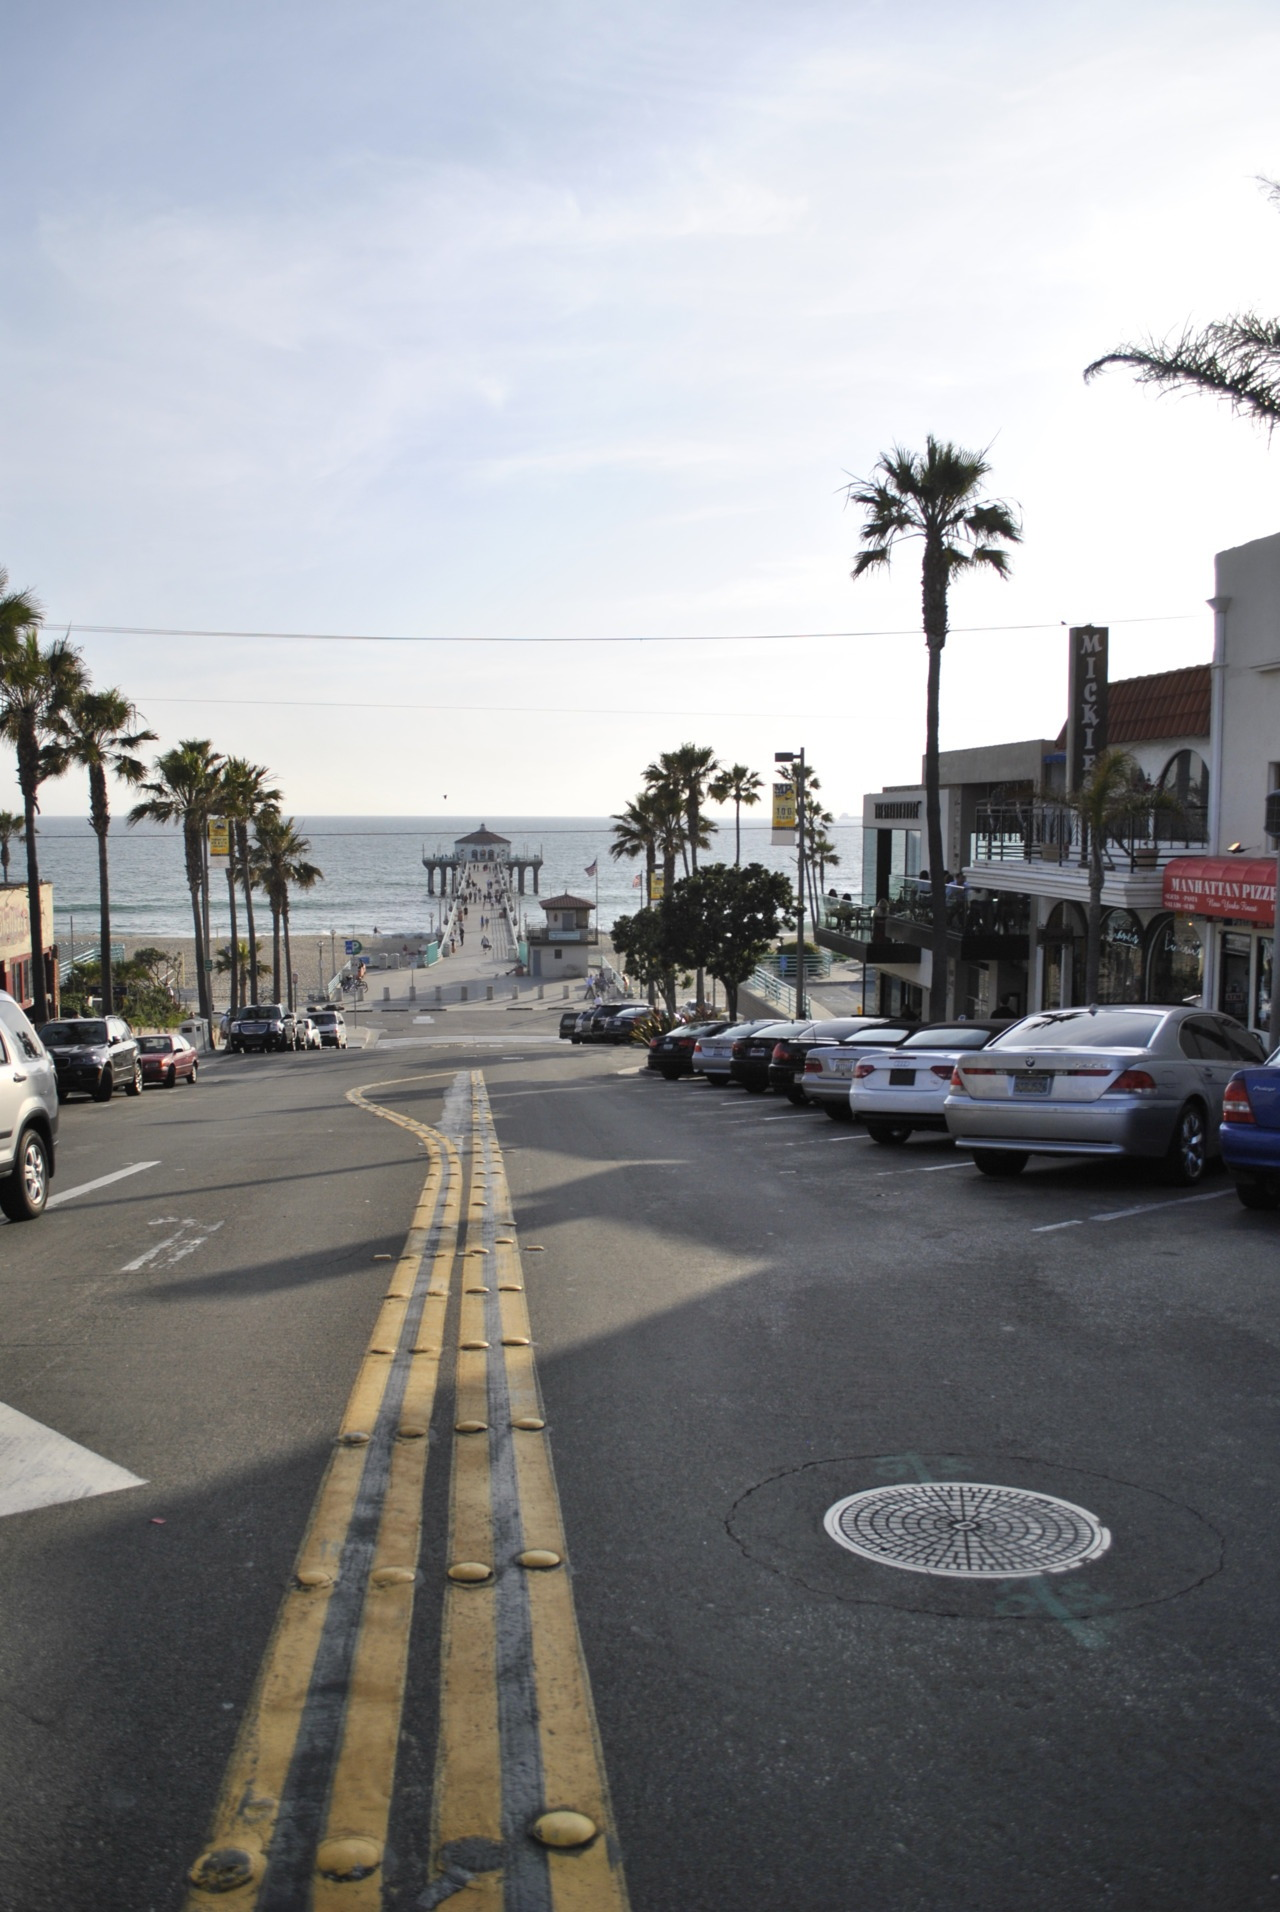 soul-surfer:  travels-with-charley:  Manhattan Beach BlvdLos Angeles, California  OMG…fuck yes!